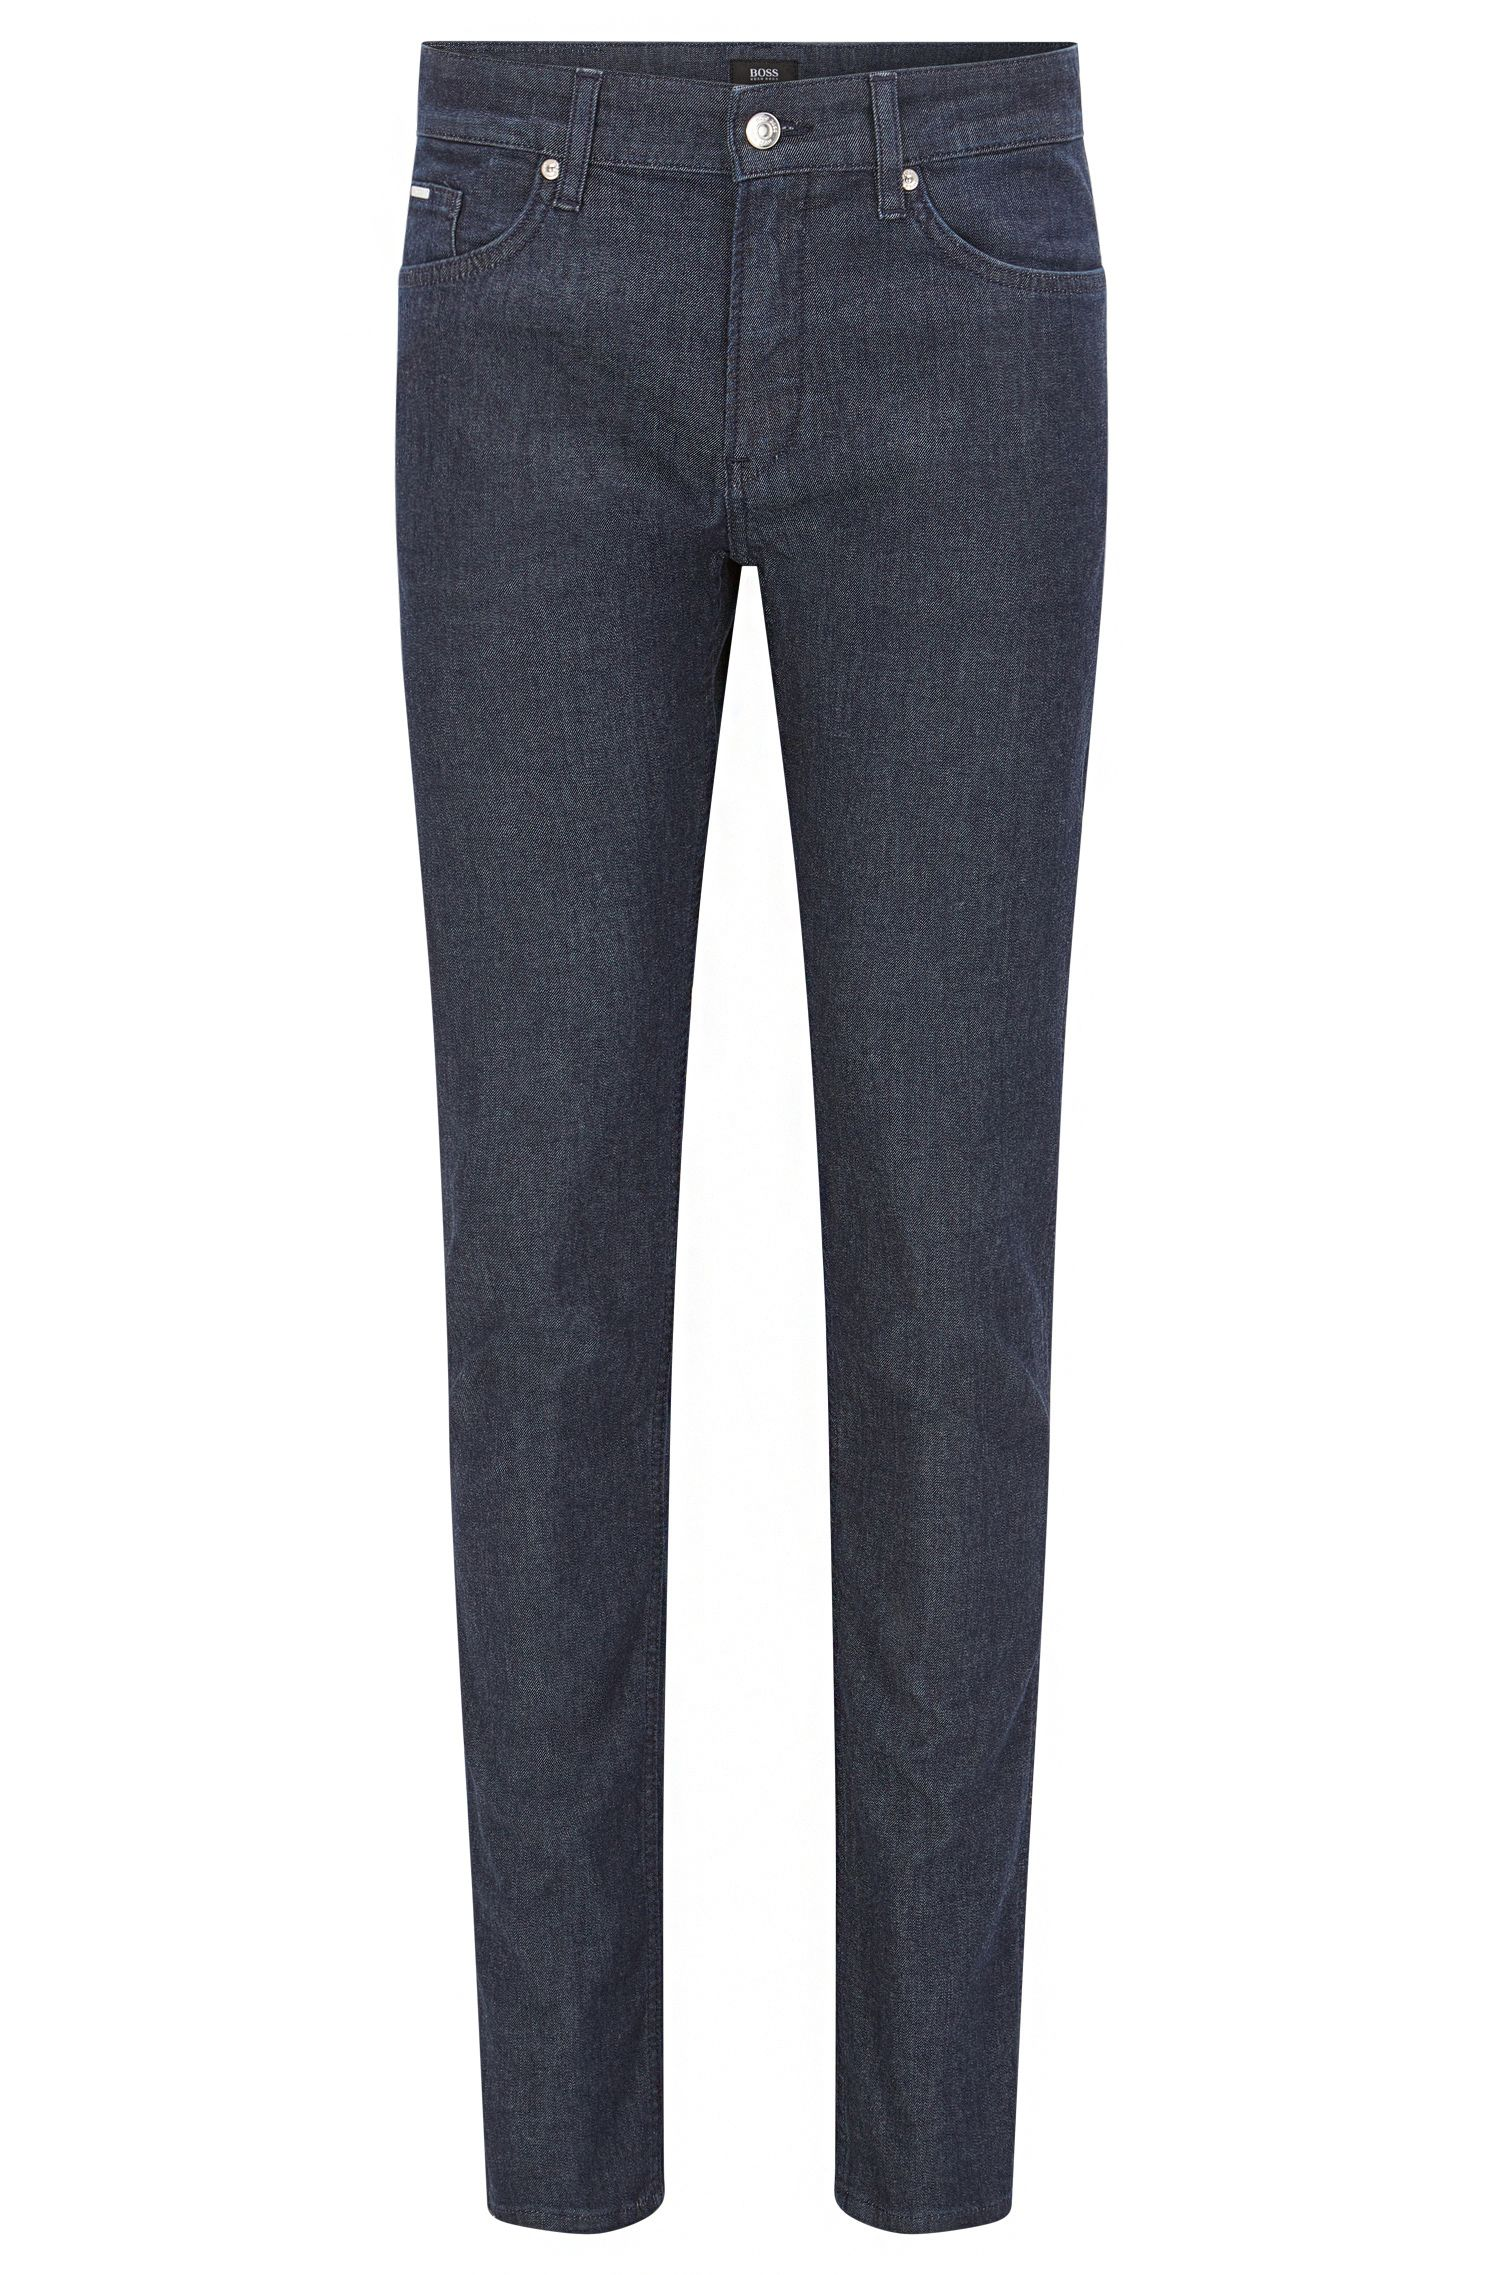 Jeans Slim Fit bleu foncé en denim stretch